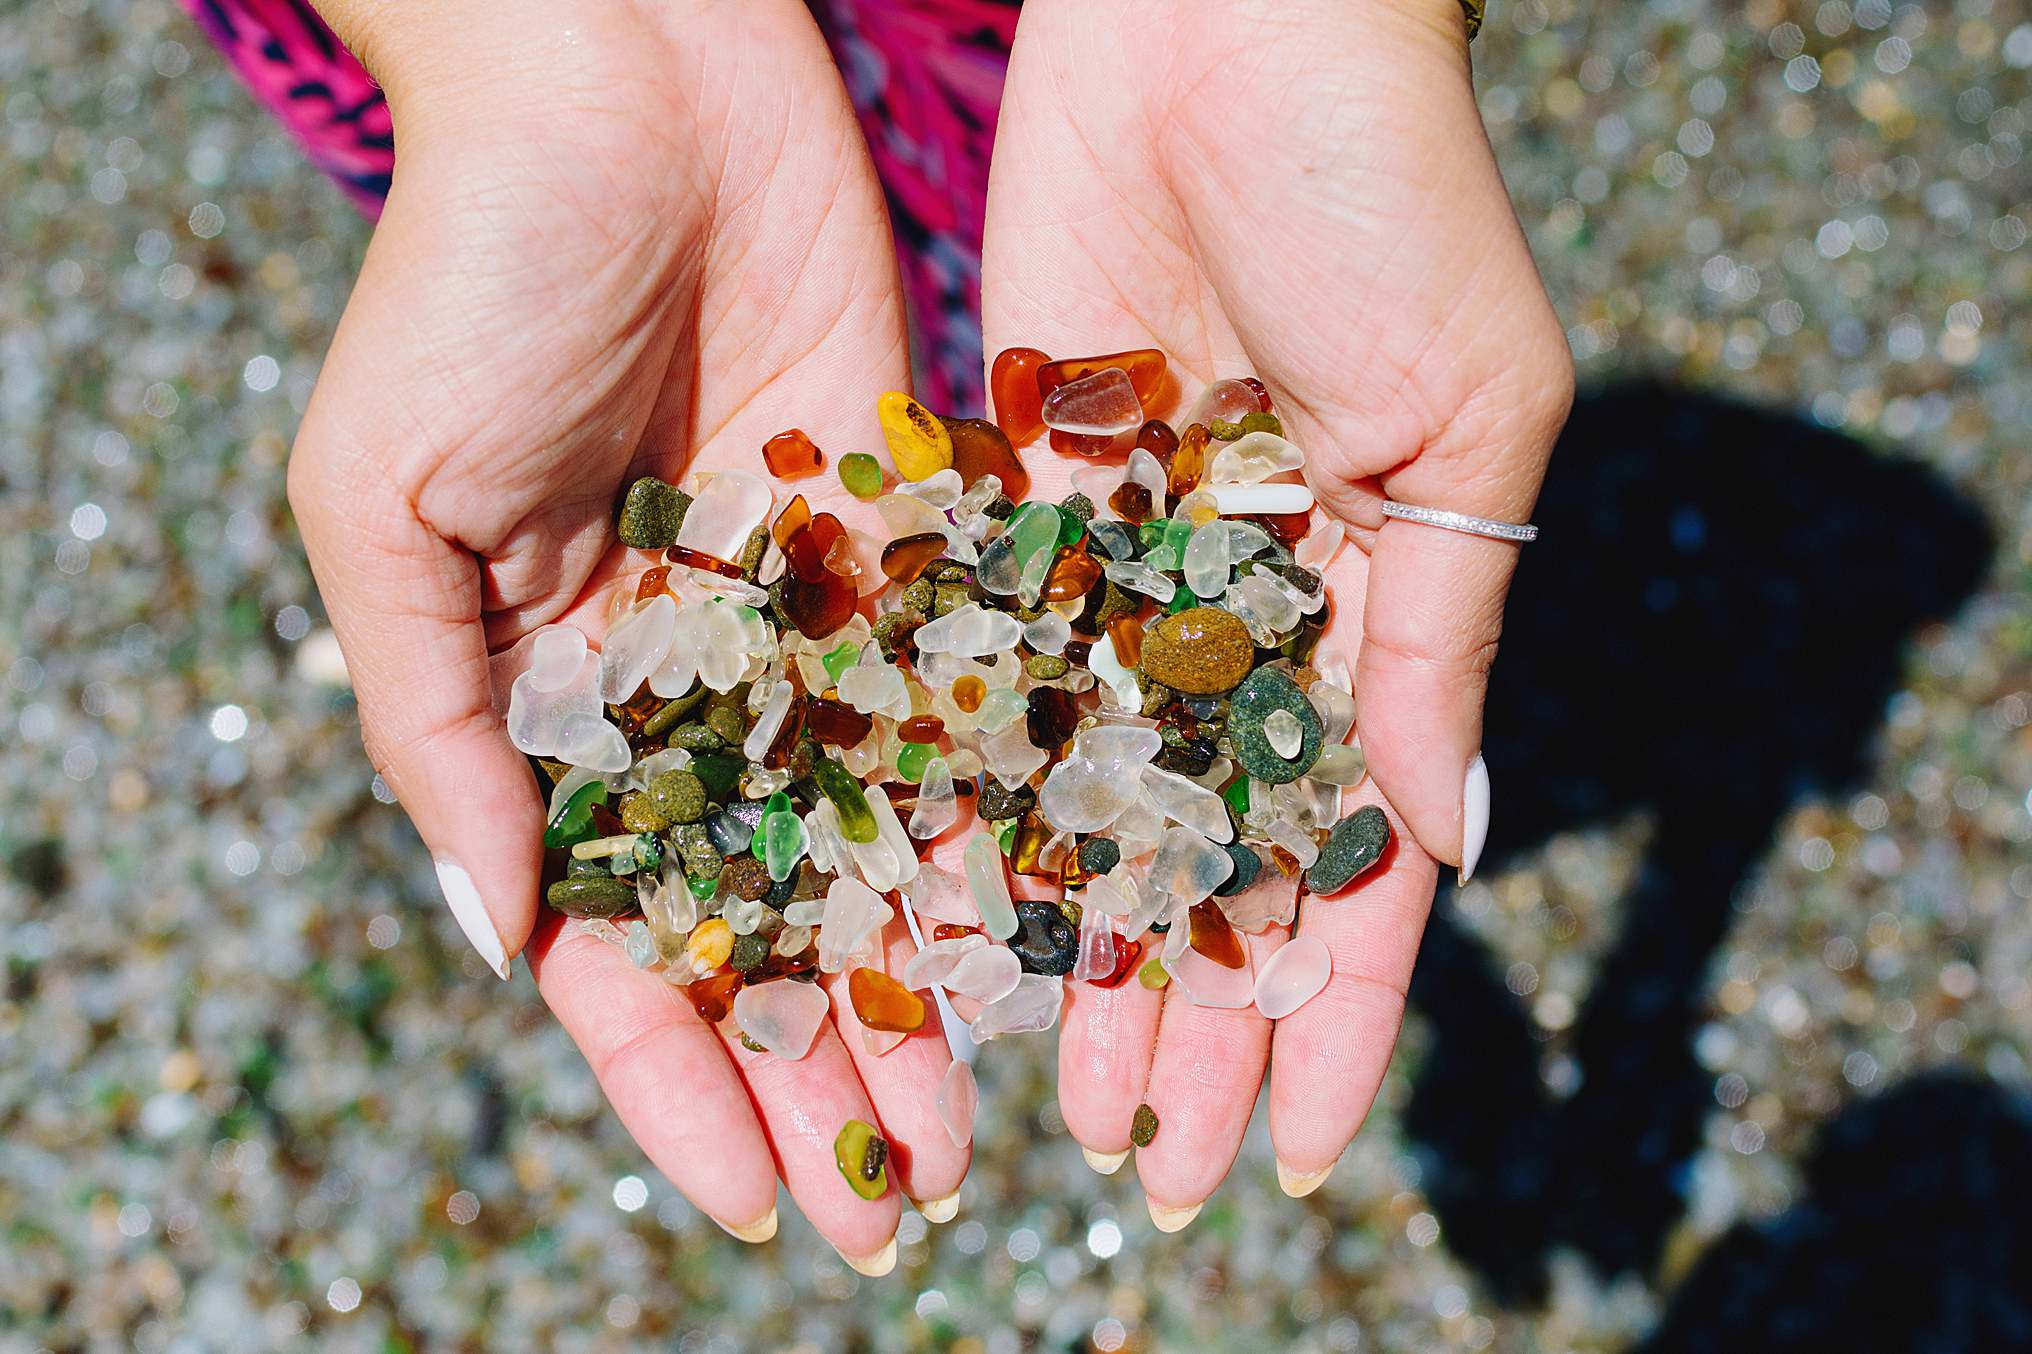 glass beach Fort Bragg Mendocino county is there glass on glass beach -Diana Elizabeth blog lifestyle blogger